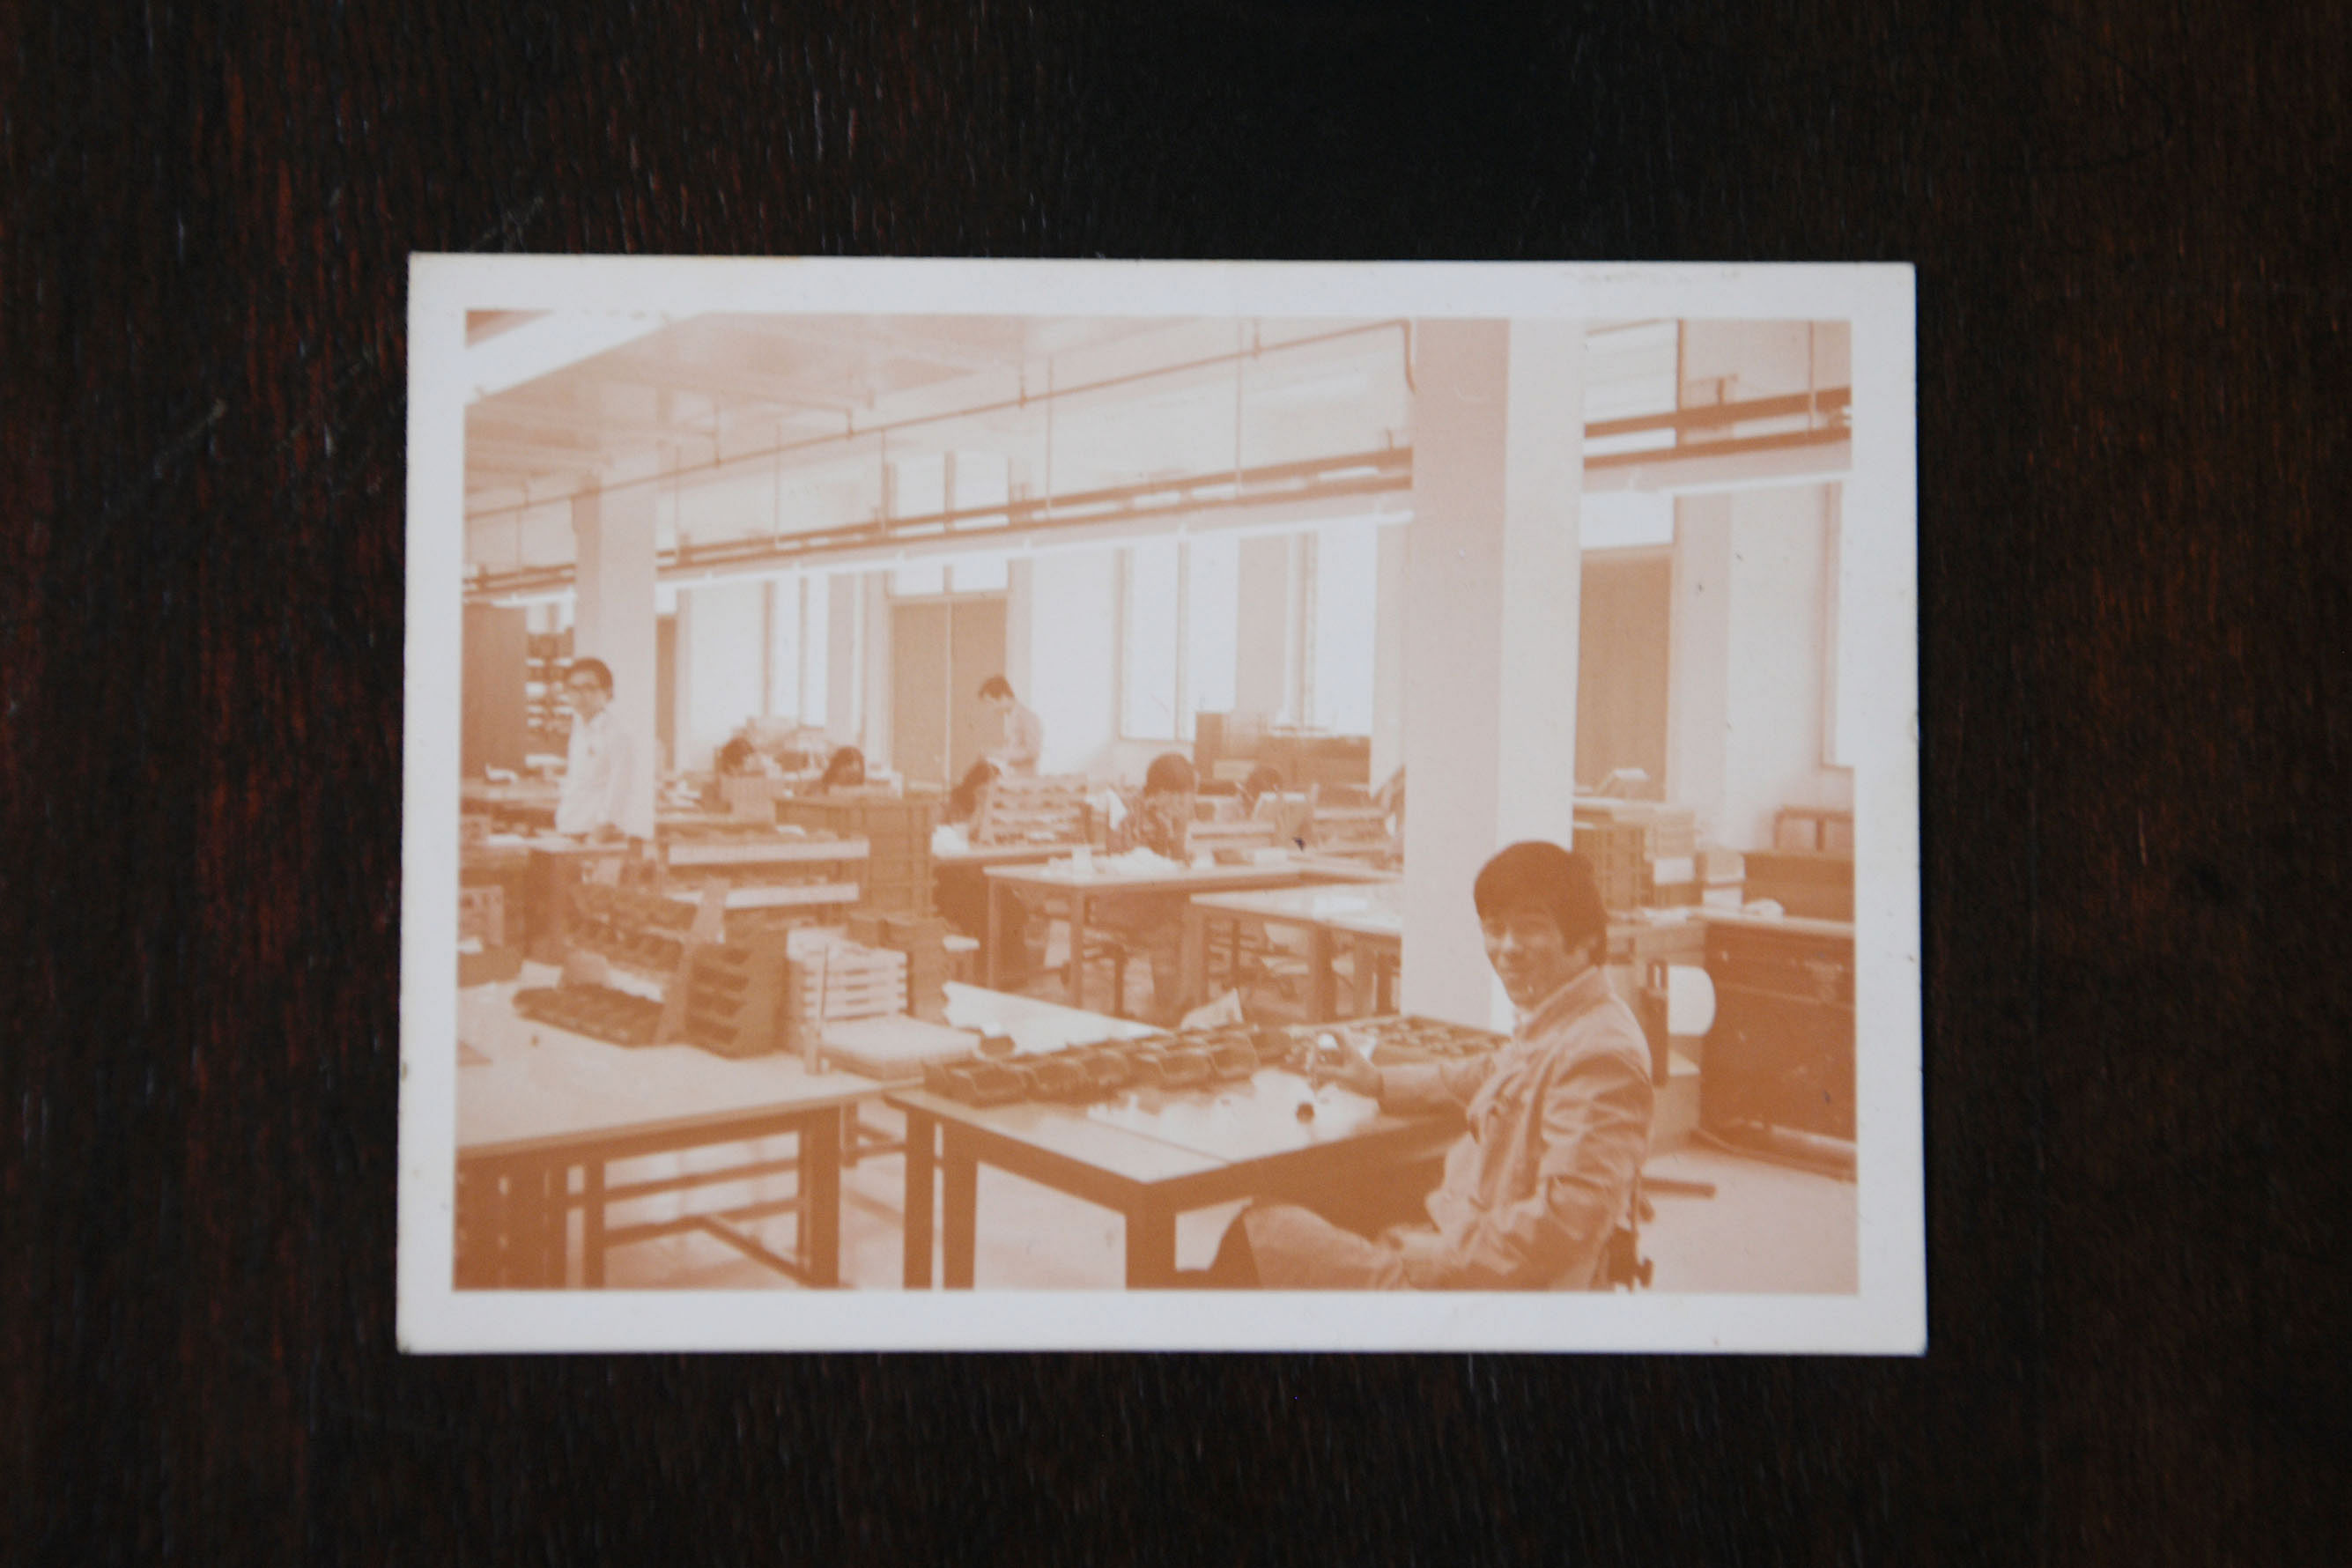 """Mr Chong Nam Soy when he was a supervisor at the Rollei factory in the 1970s. The company, which produced optical instruments, was seen as one of the """"best companies"""" to work at in Singapore, he said. Mr Chong, 68, wearing his old Rollei uniform and"""